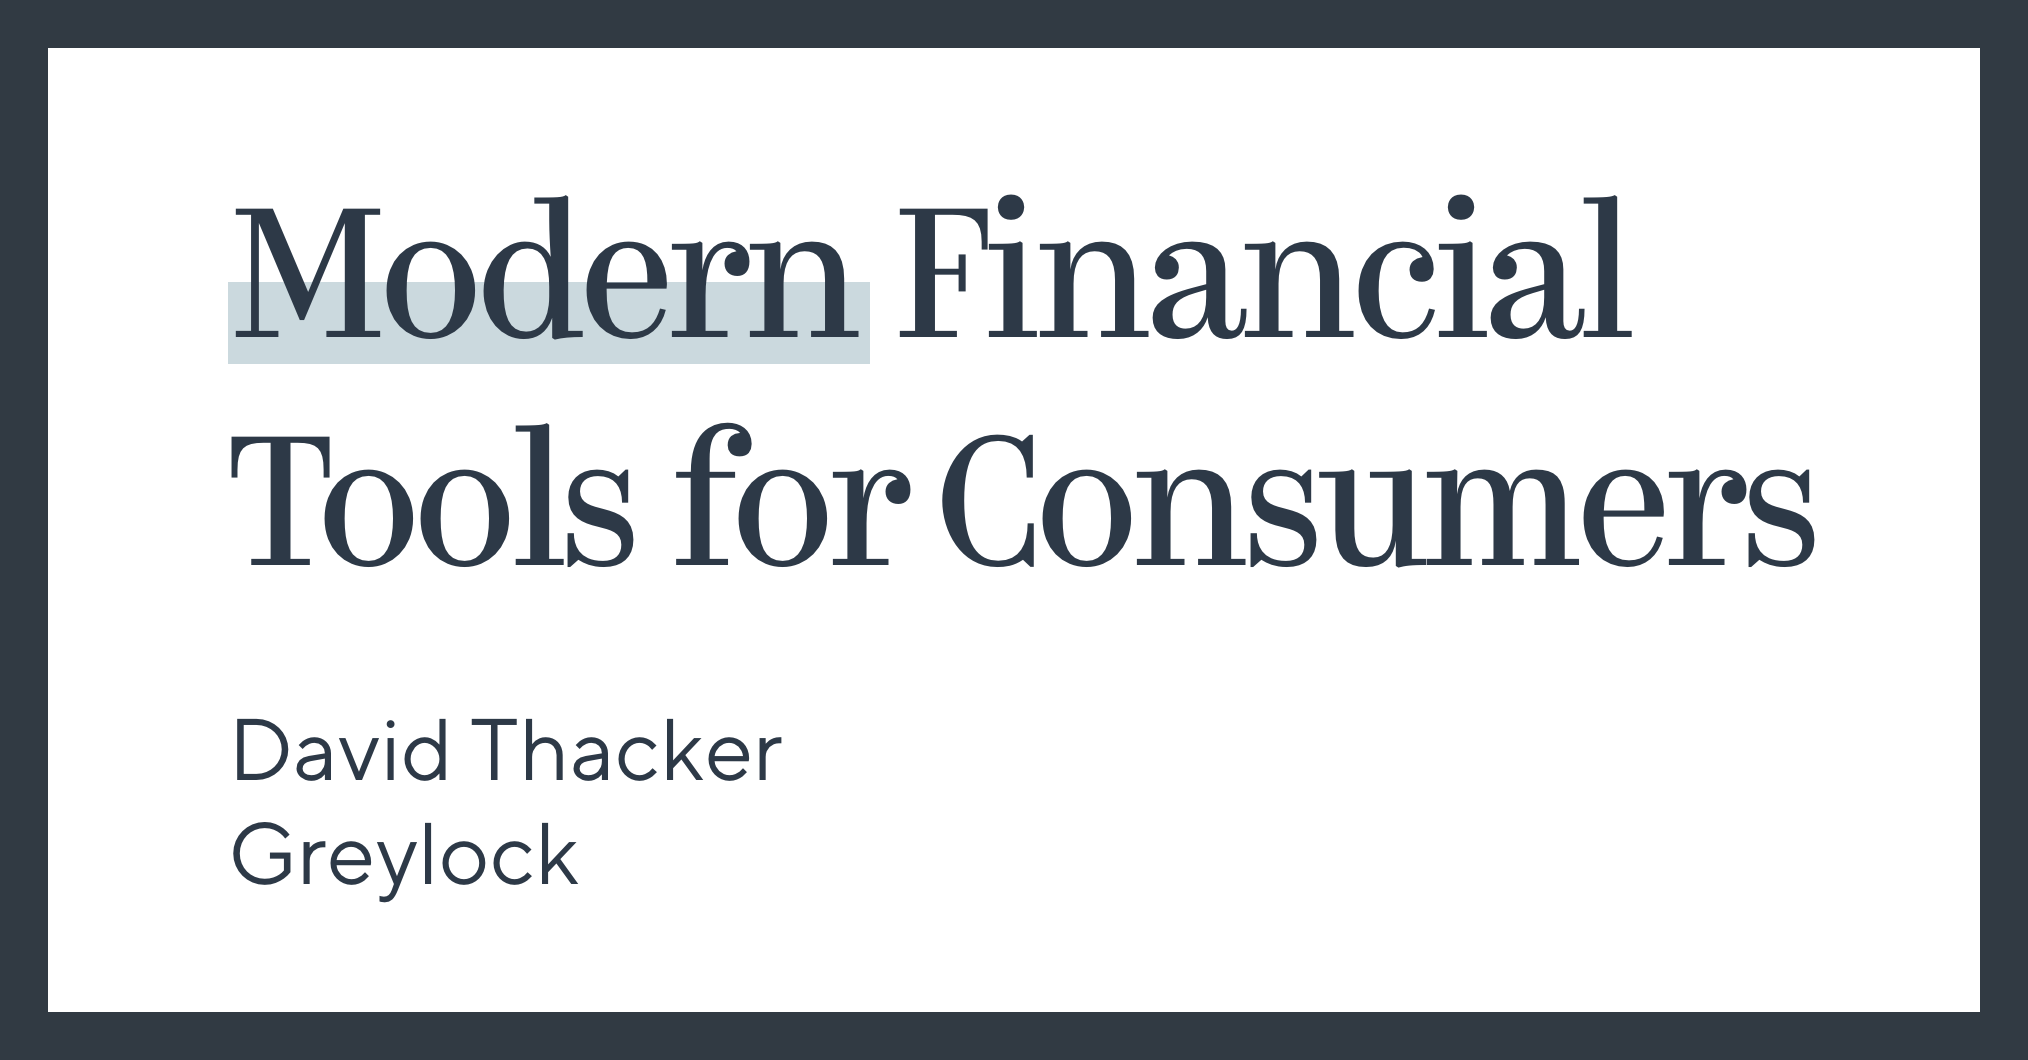 Modern Financial Tools for Consumers